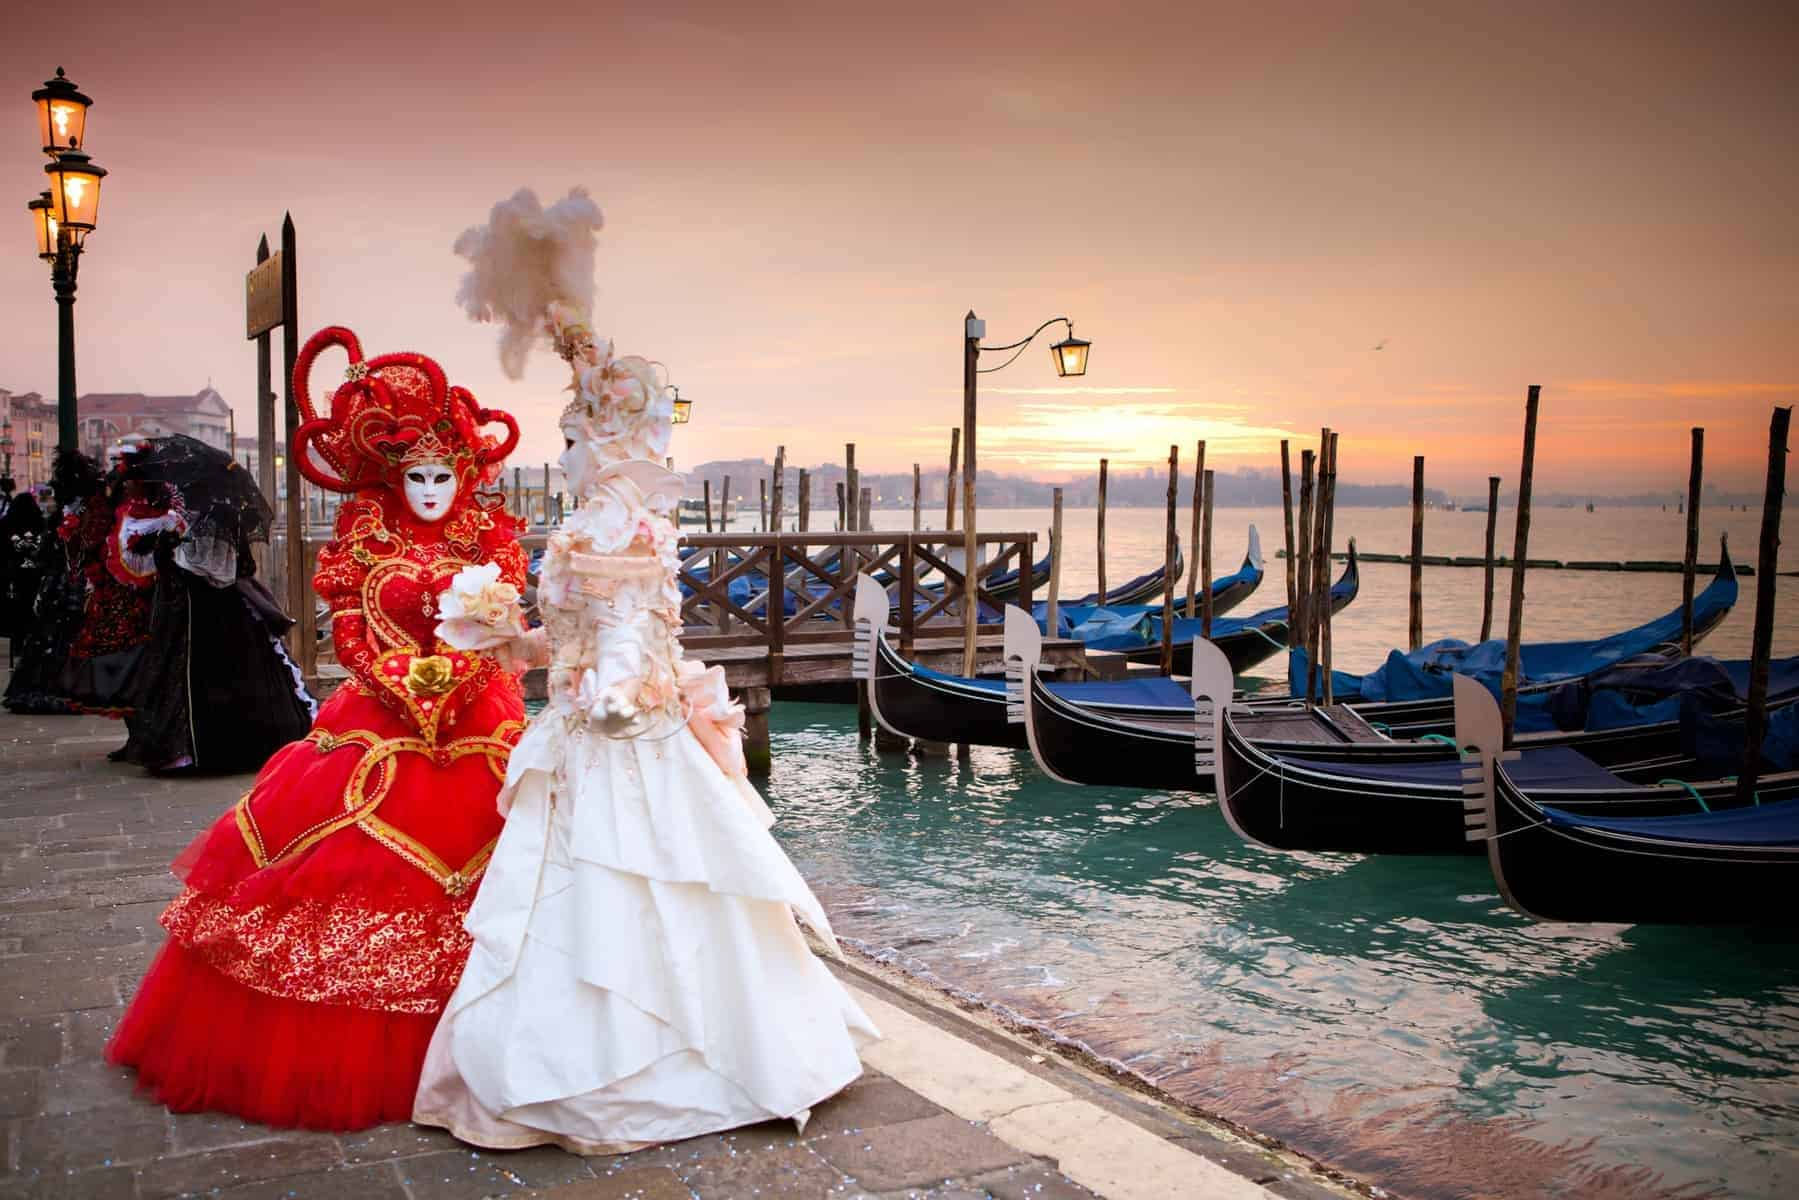 Karneval i Venedig. Sunrise in Venice Italy in front of Gondolas on the Grand Canal Beautiful costumed women